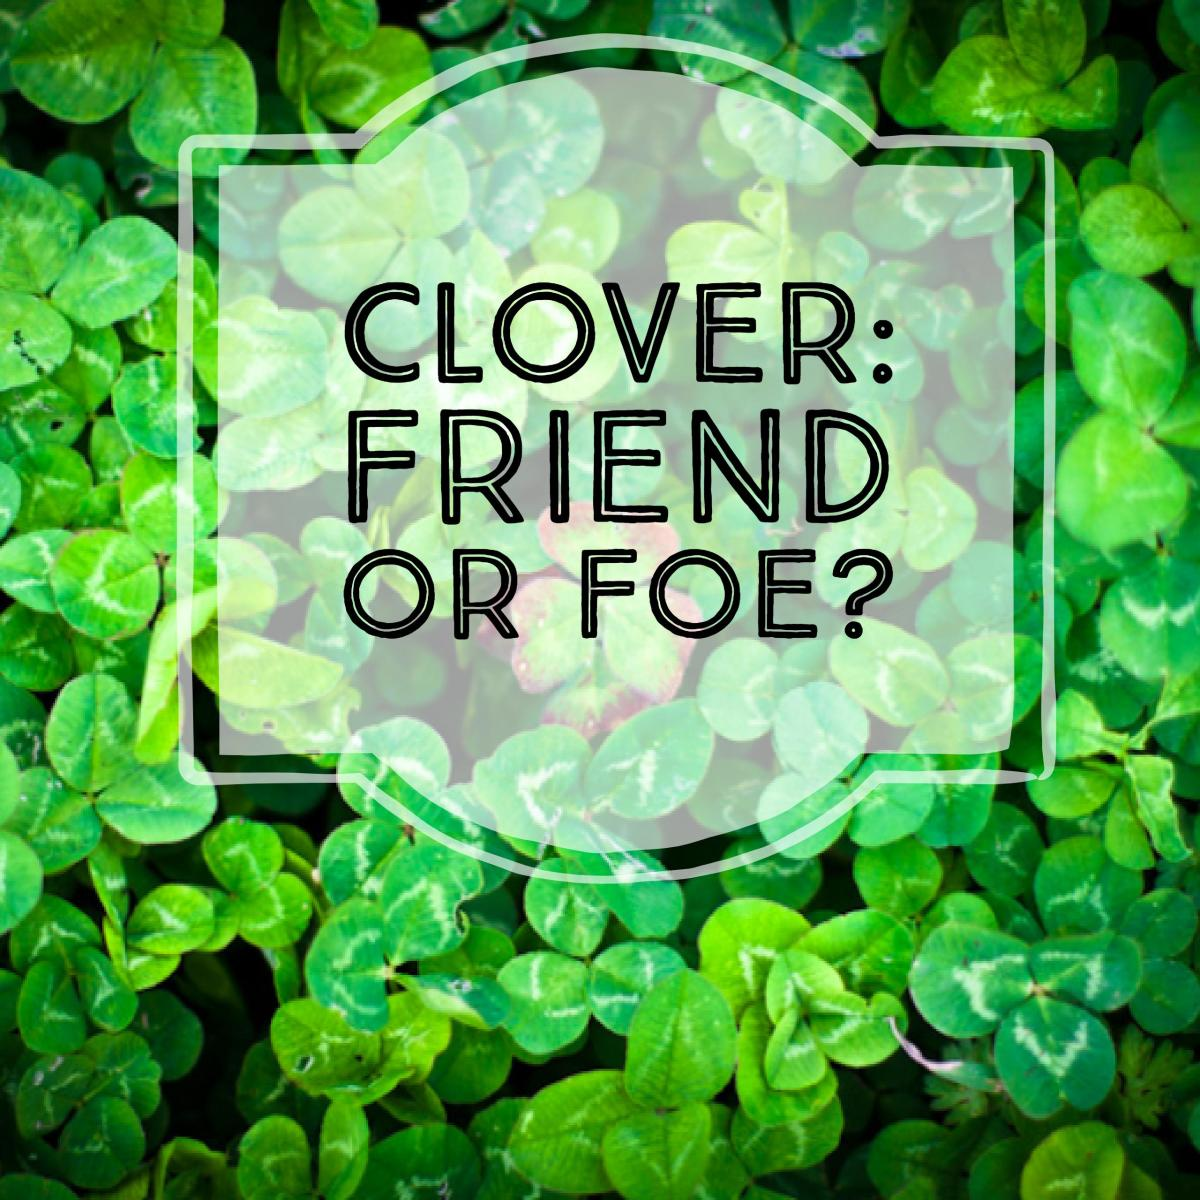 Clover requires less water, fertilizer, compost, herbicide, and weeding.